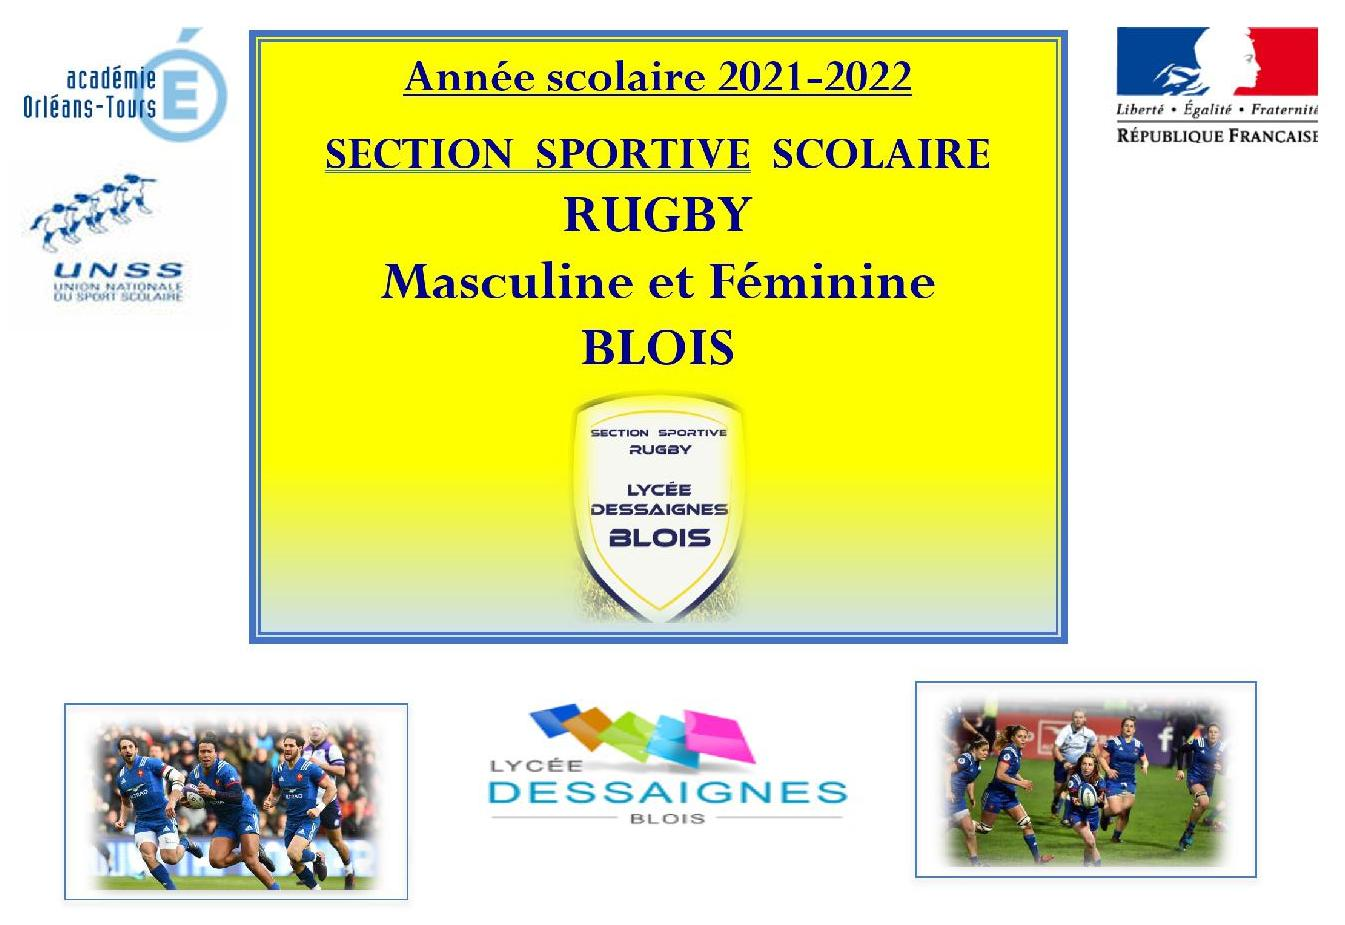 Section Sportive Scolaire Rugby 2021-2022 : Journée de détection le 7 avril